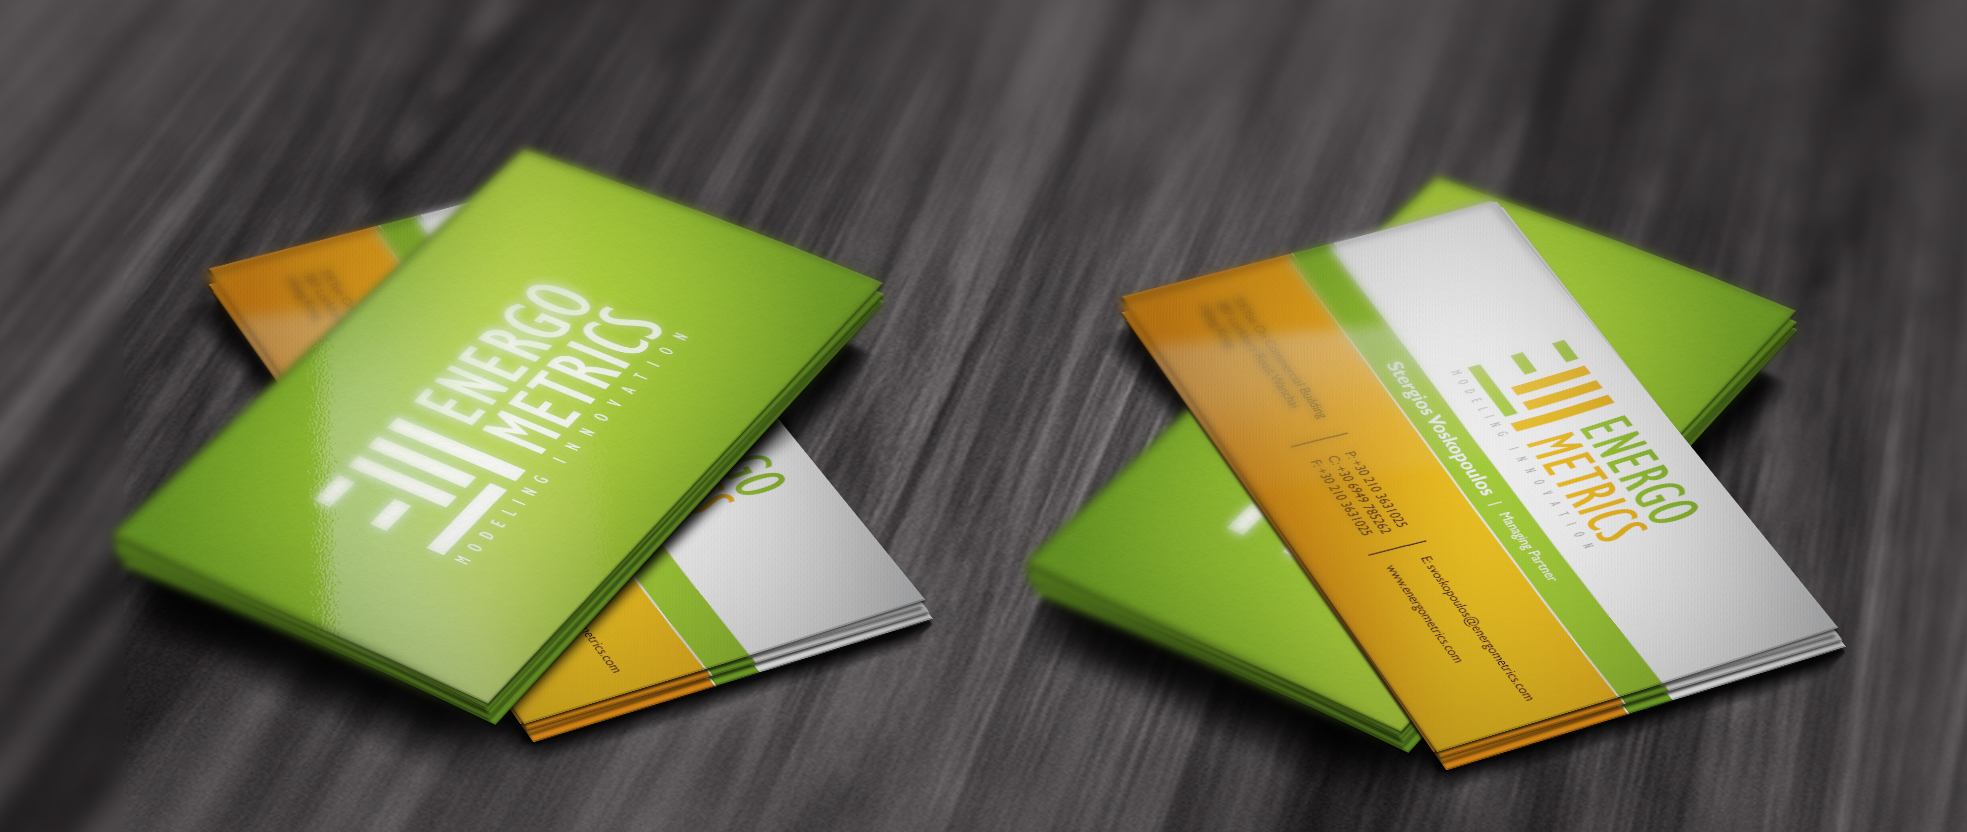 ENERGOMETRICS - Business Cards and Stationery - Consulting